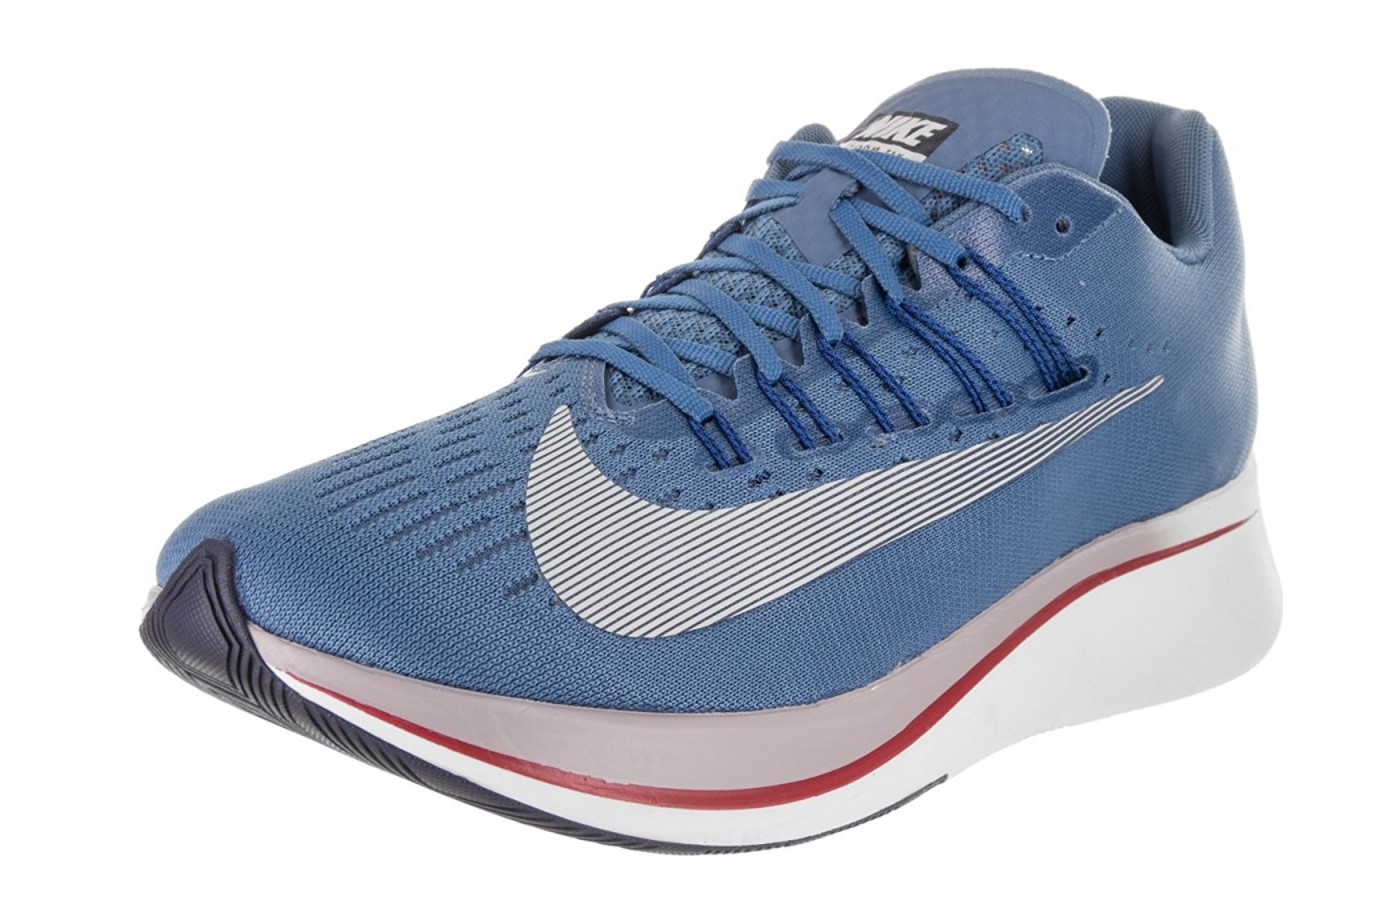 low price excellent quality 100% genuine Nike Zoom Fly